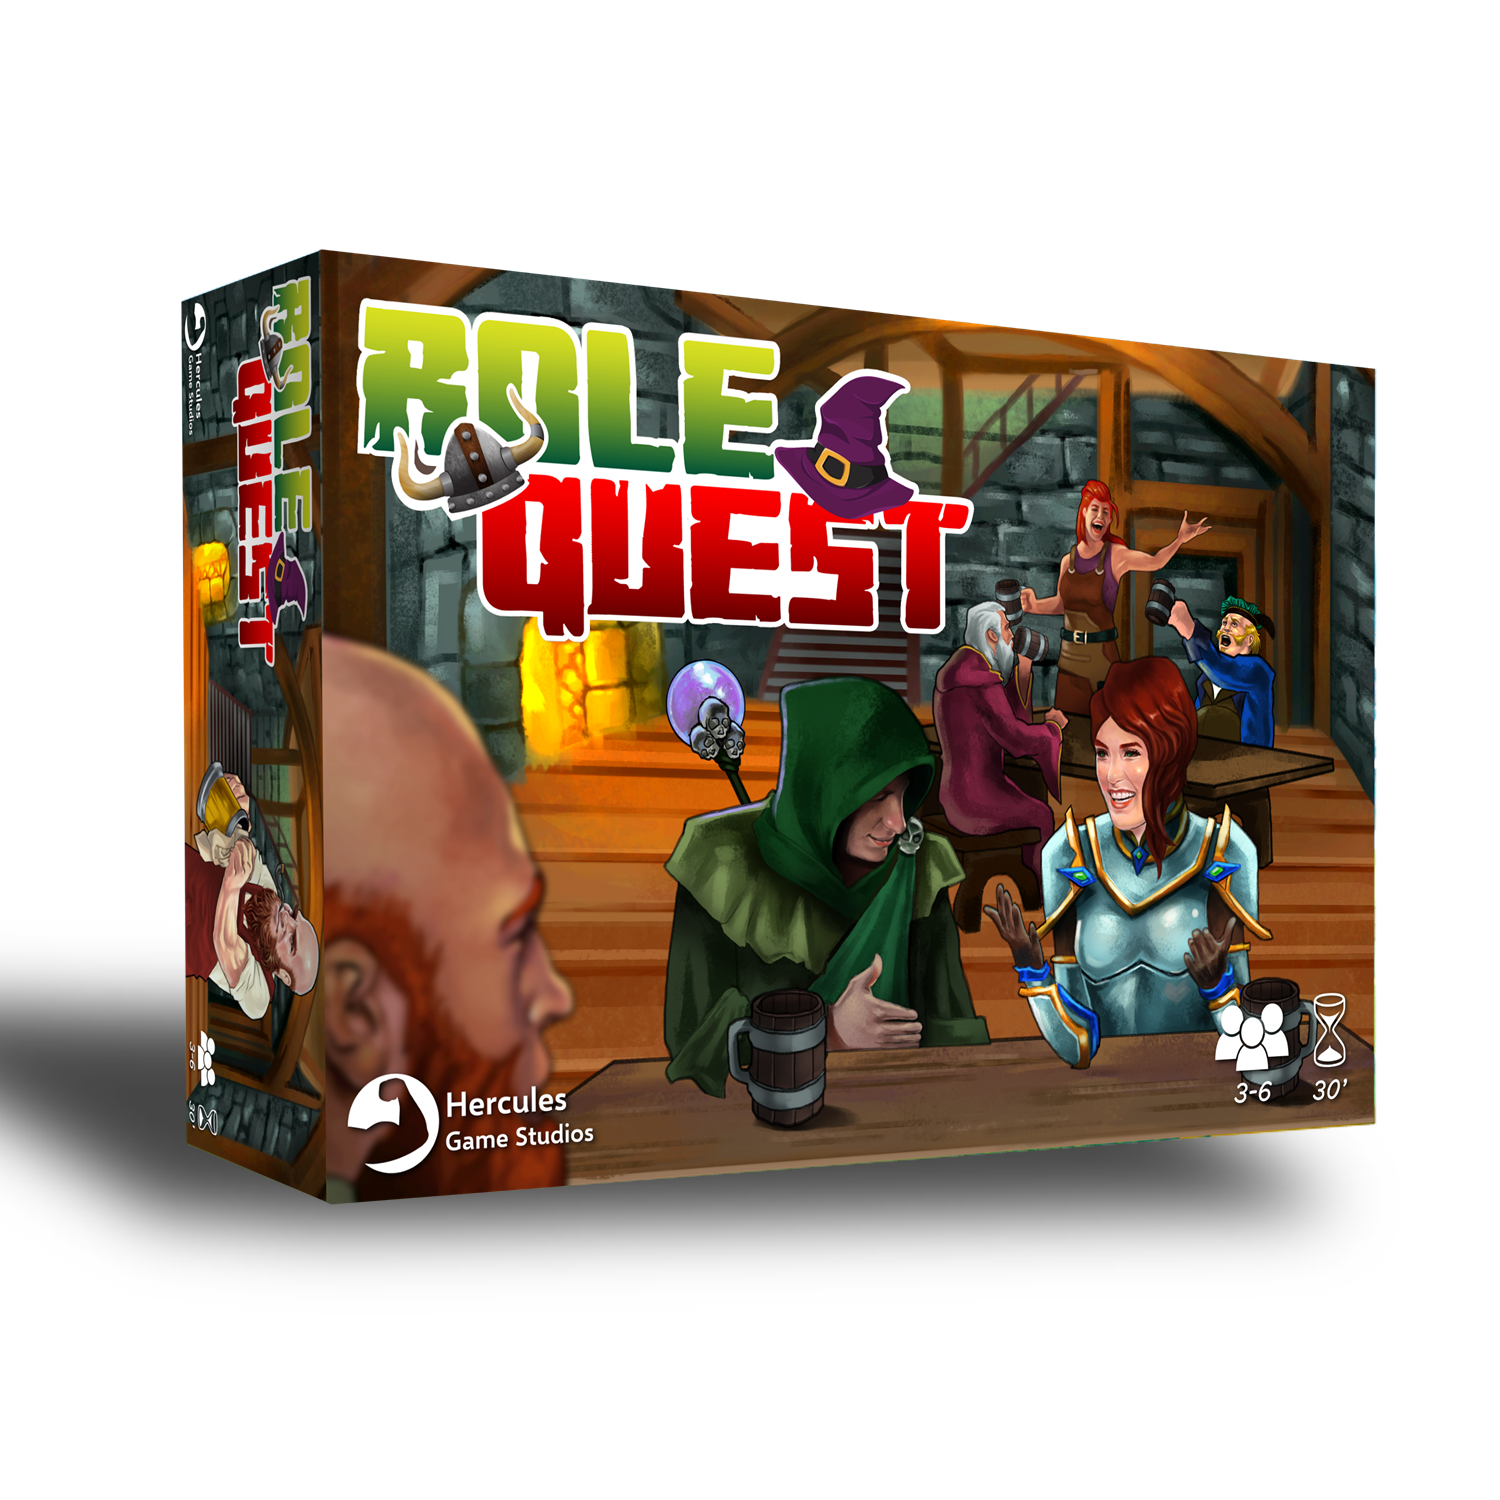 Role-Quest Box